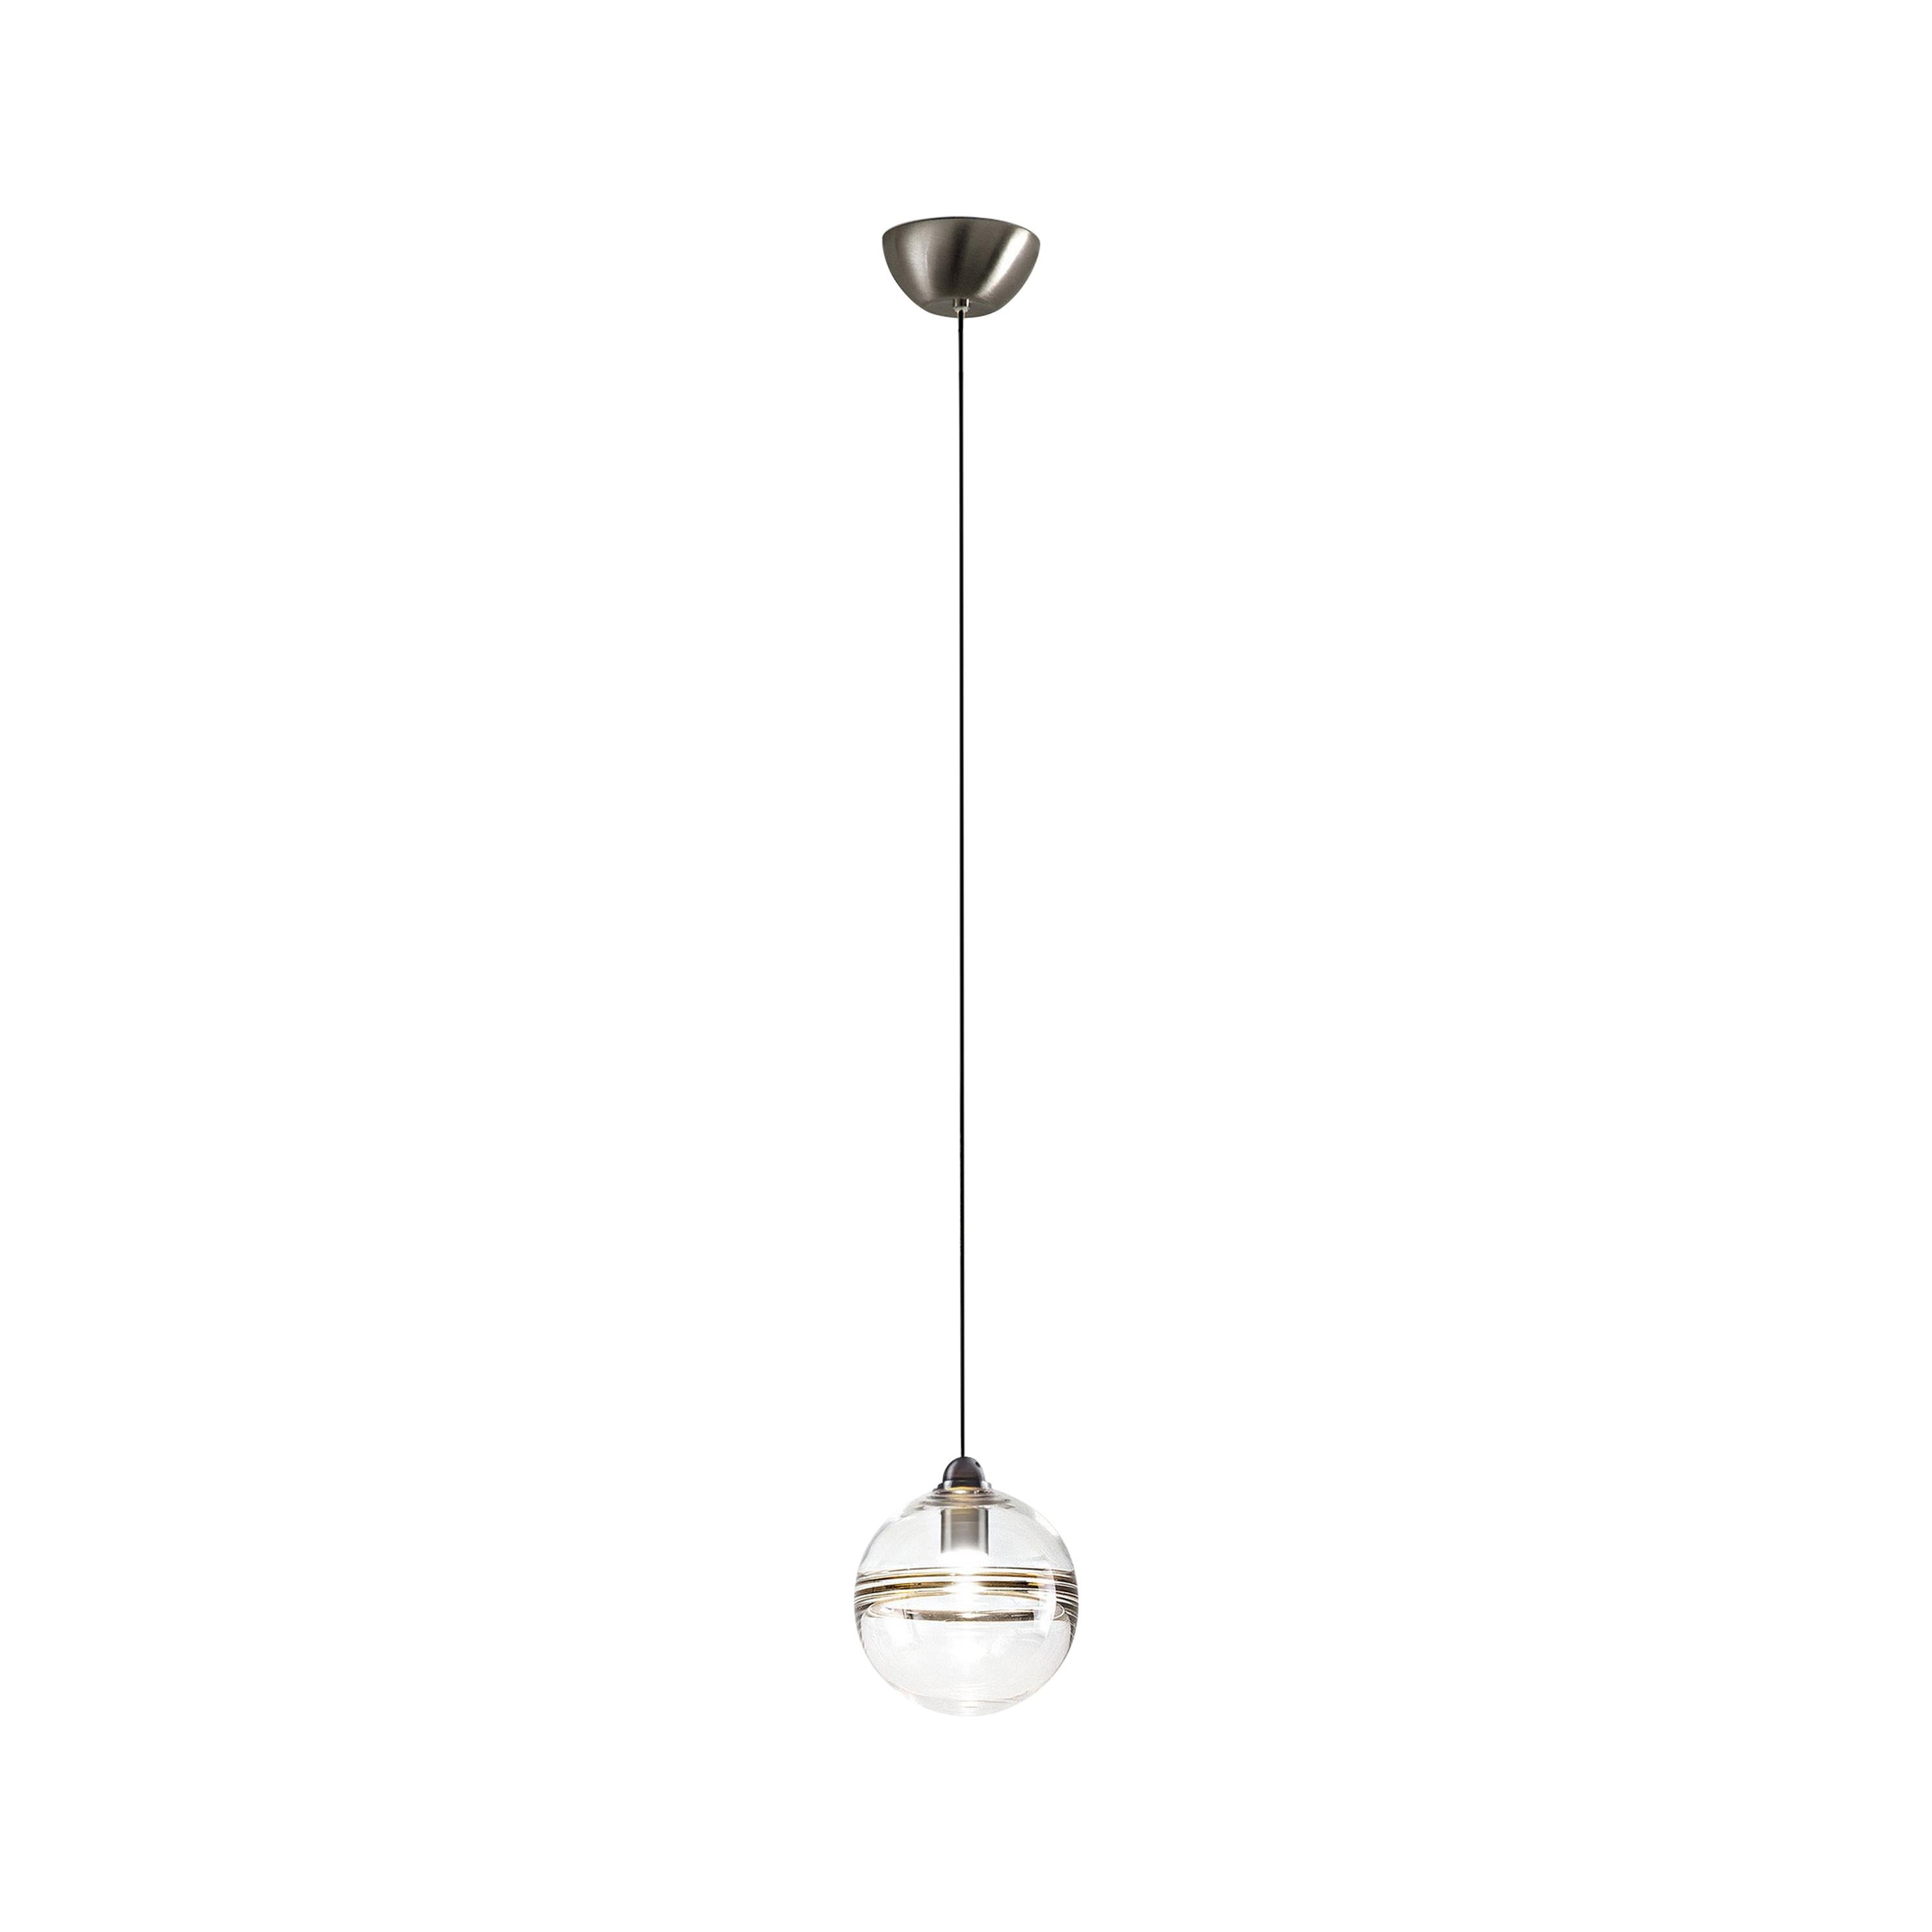 LED Oro SP P Suspension Light with Nickel Frame by Vistosi